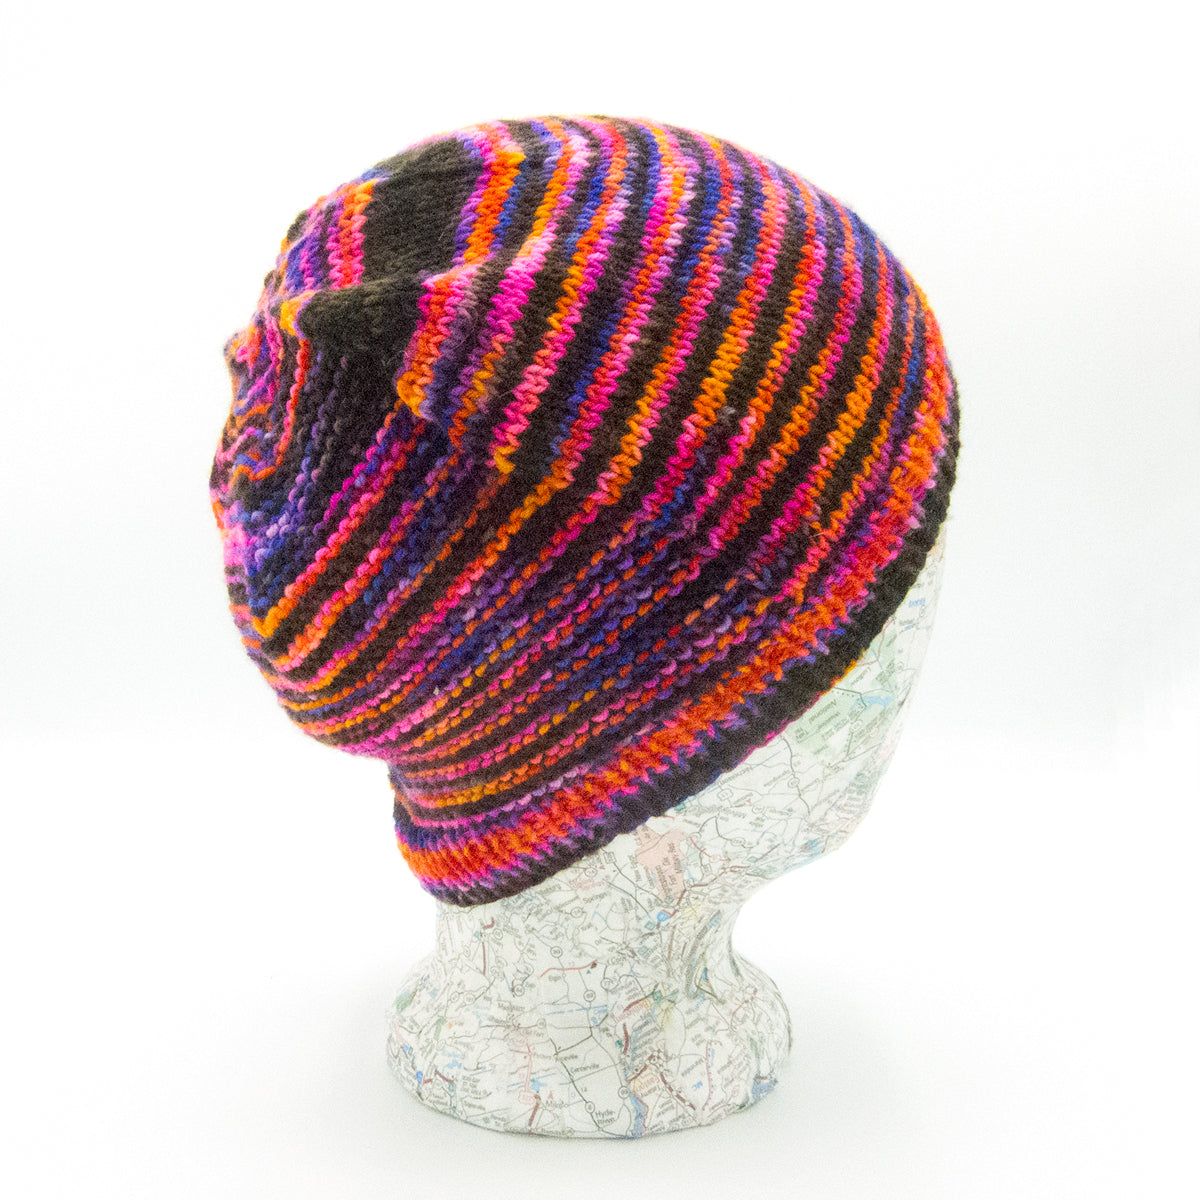 Knitting 201: Make a Hat